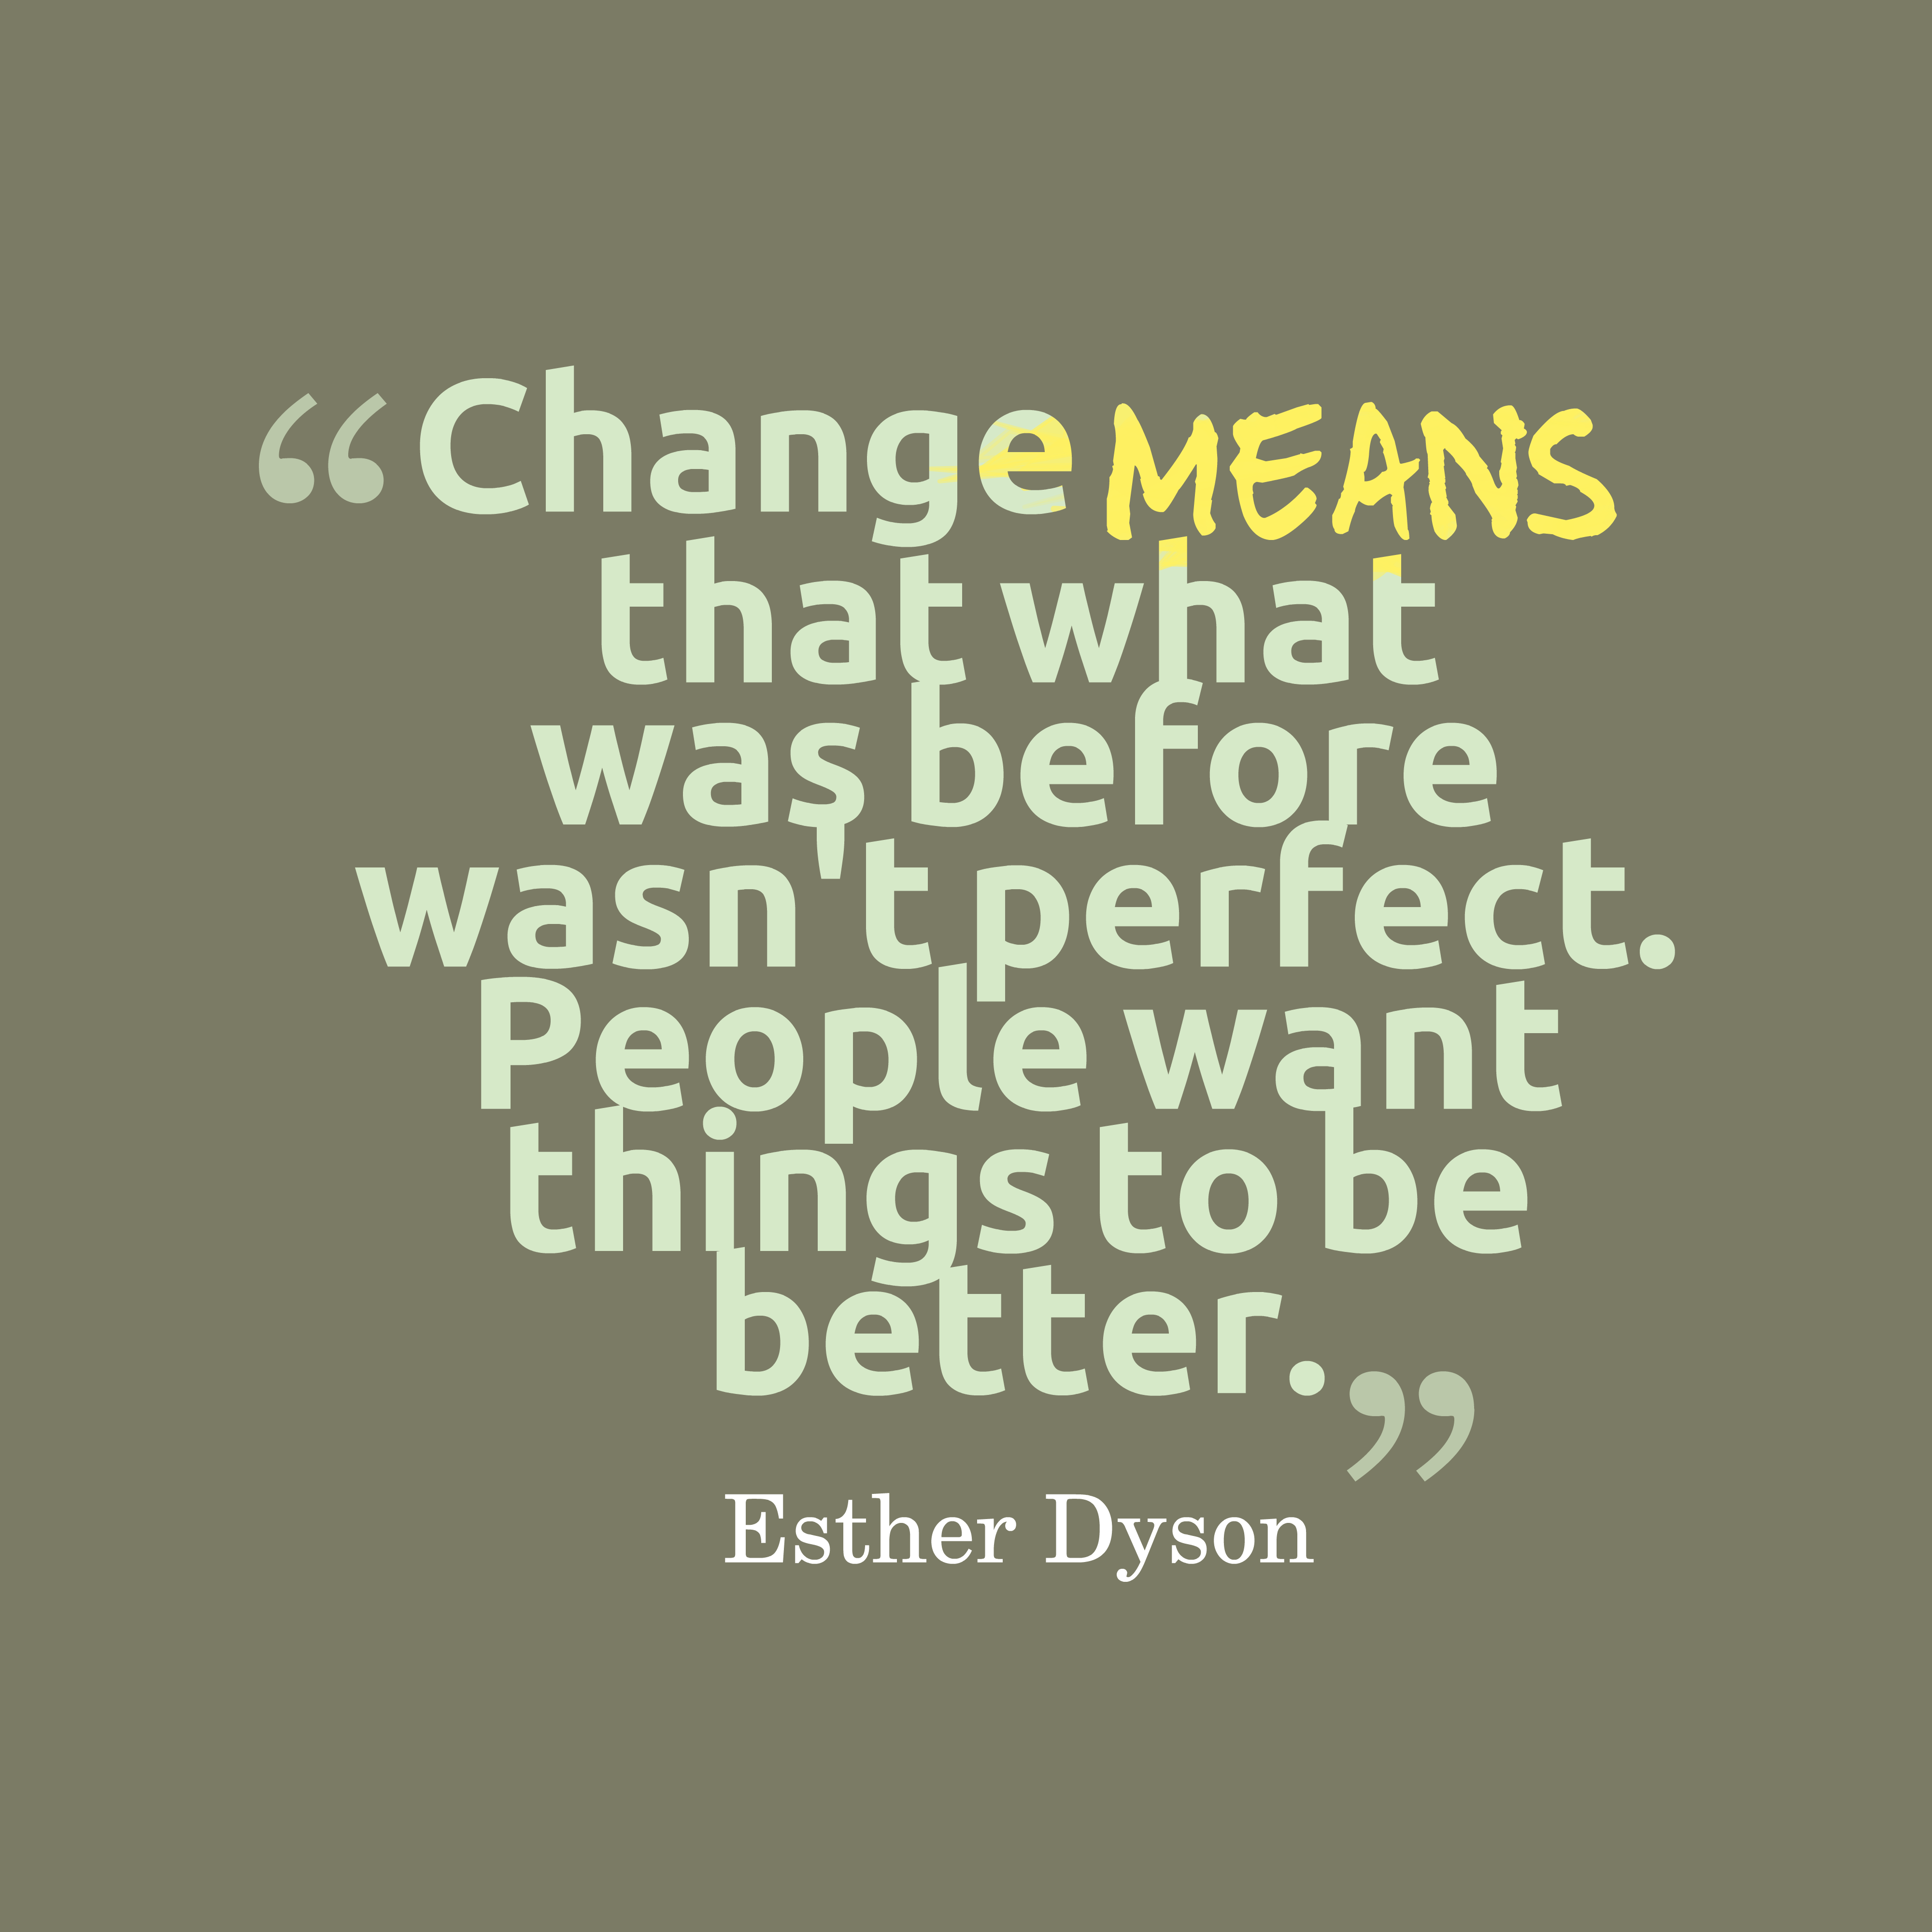 Spiritual Quotes About Life Changes: Quotes About Change For The Better (152 Quotes